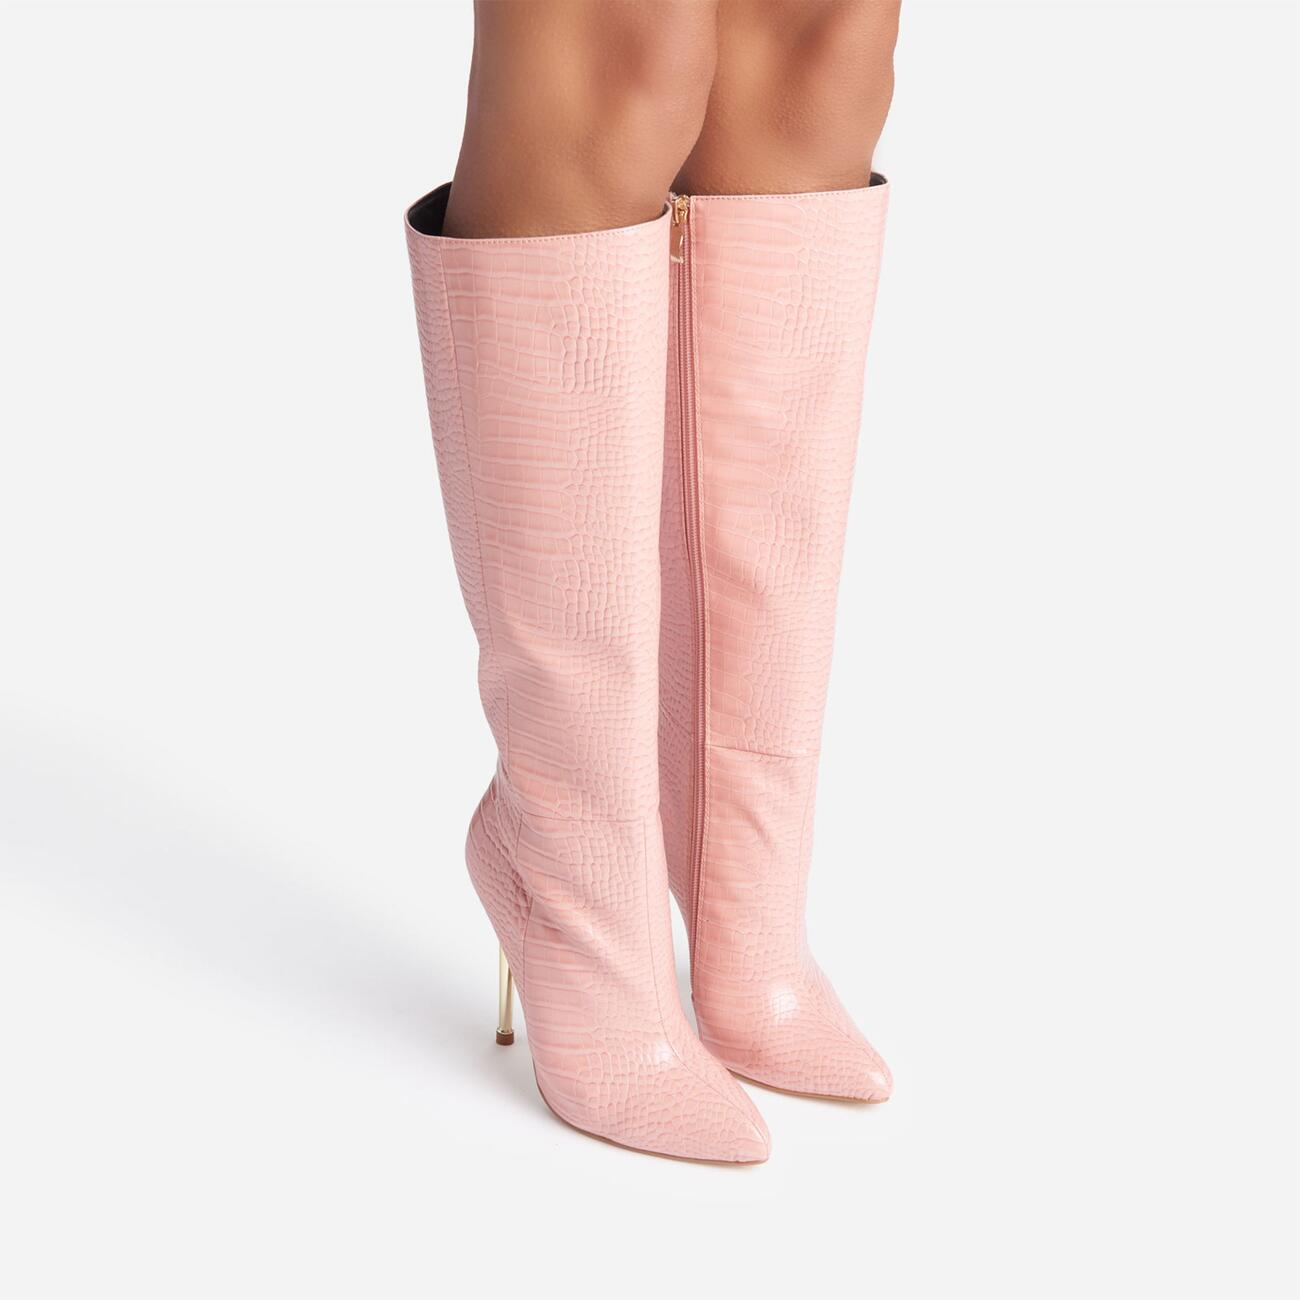 Clarity Metallic Heel Knee High Long Boots In Pink Croc Print Faux Leather Image 5